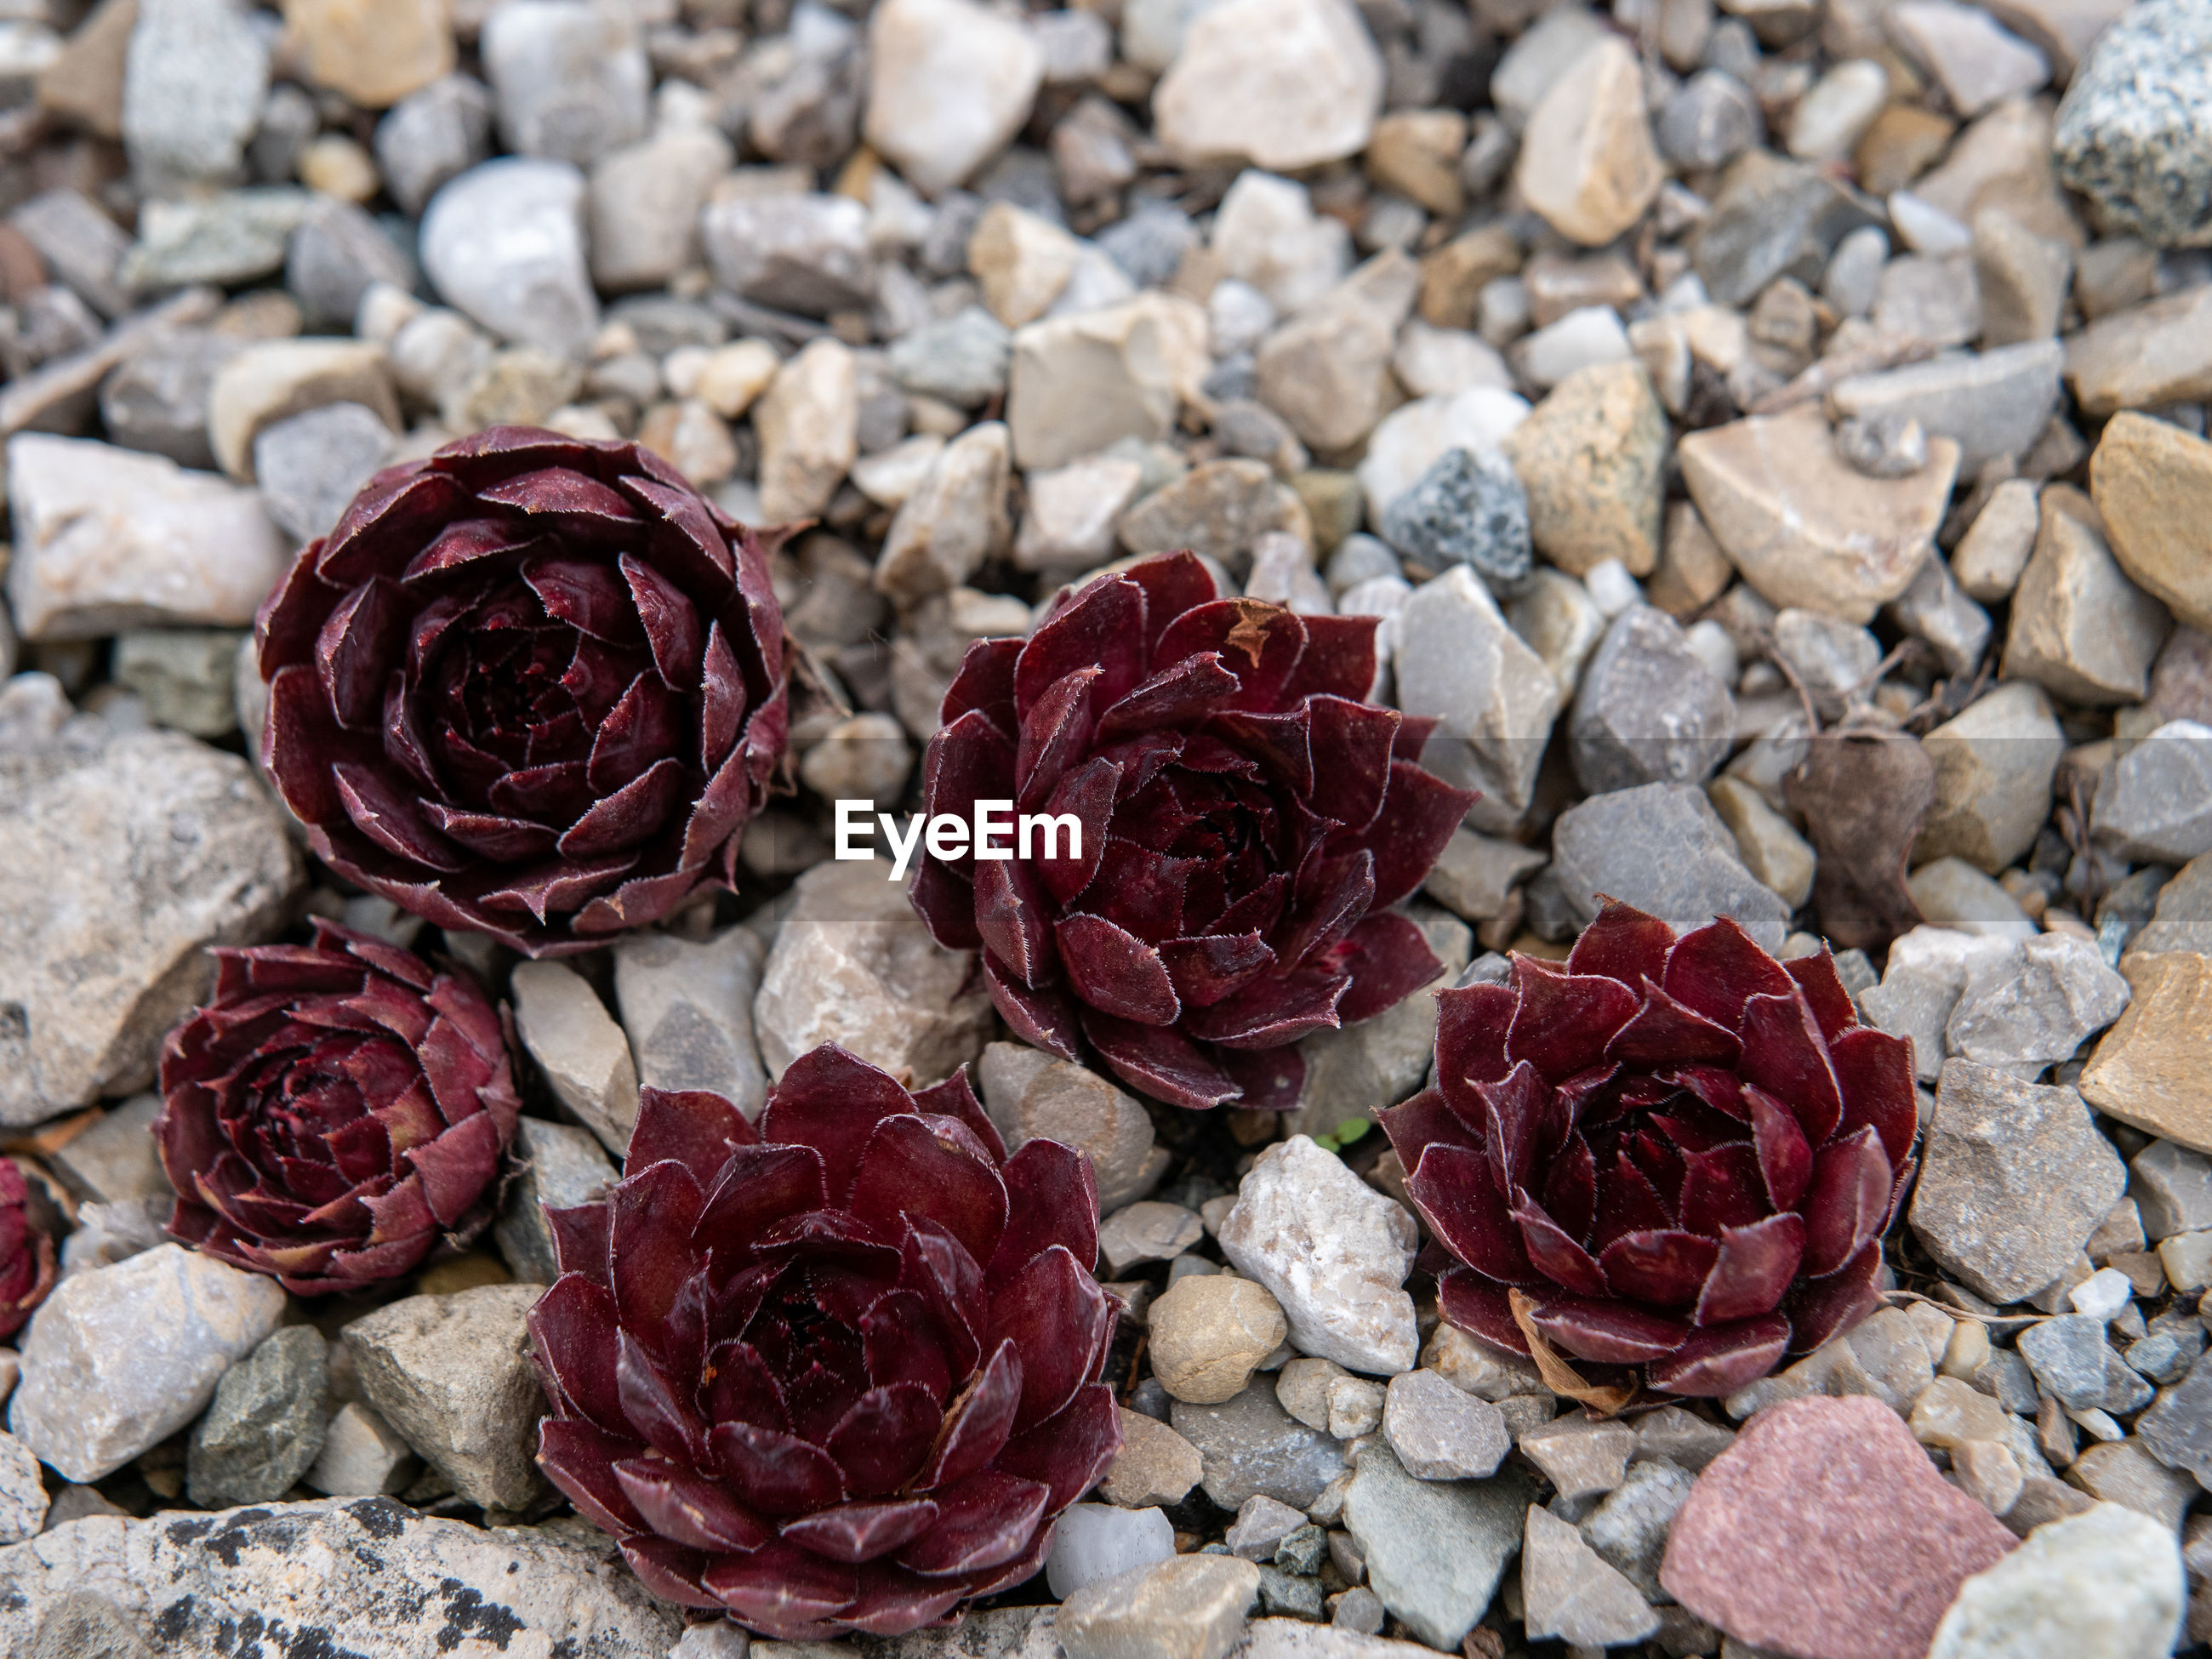 CLOSE-UP OF ROSE ROSES ON PEBBLES